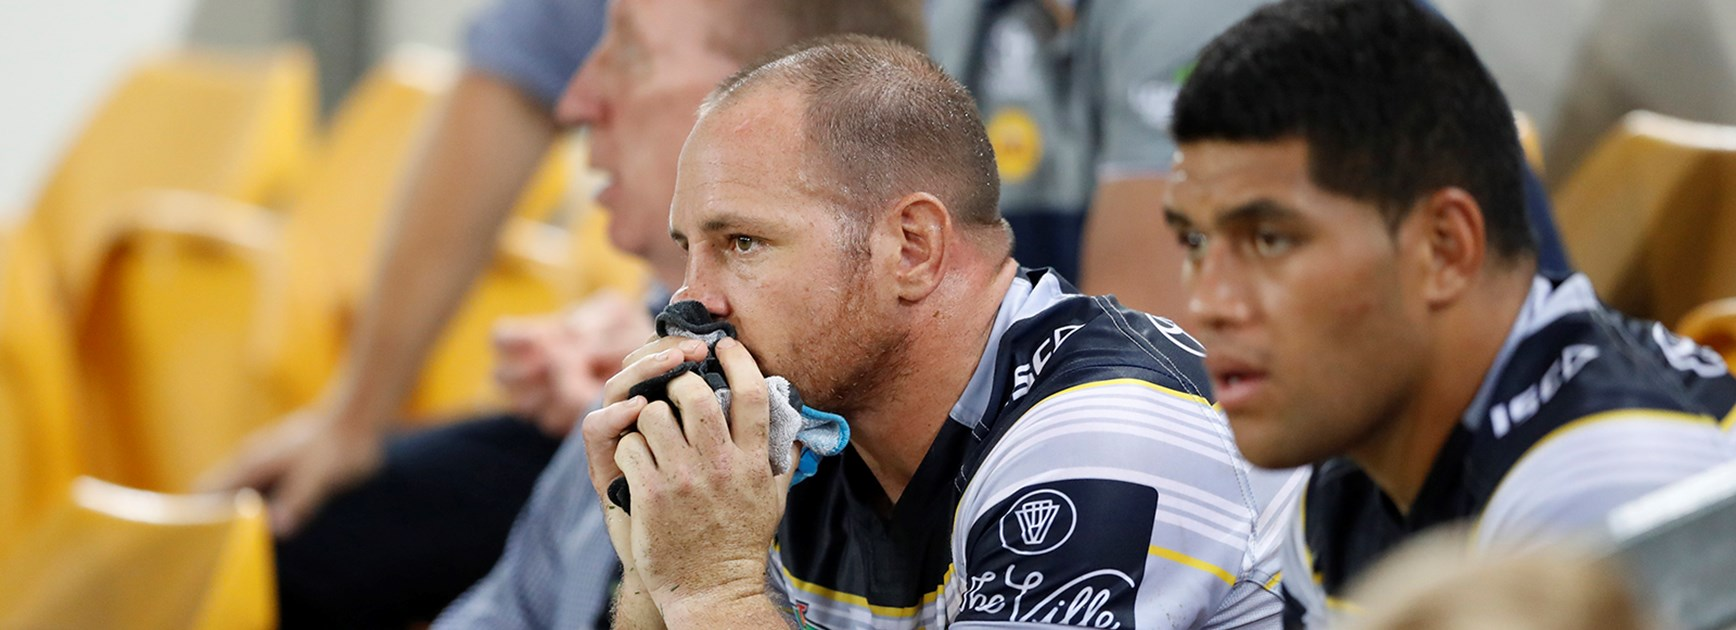 North Queensland prop Matt Scott was one of several Cowboys injured in the Round 2 clash with the Broncos.